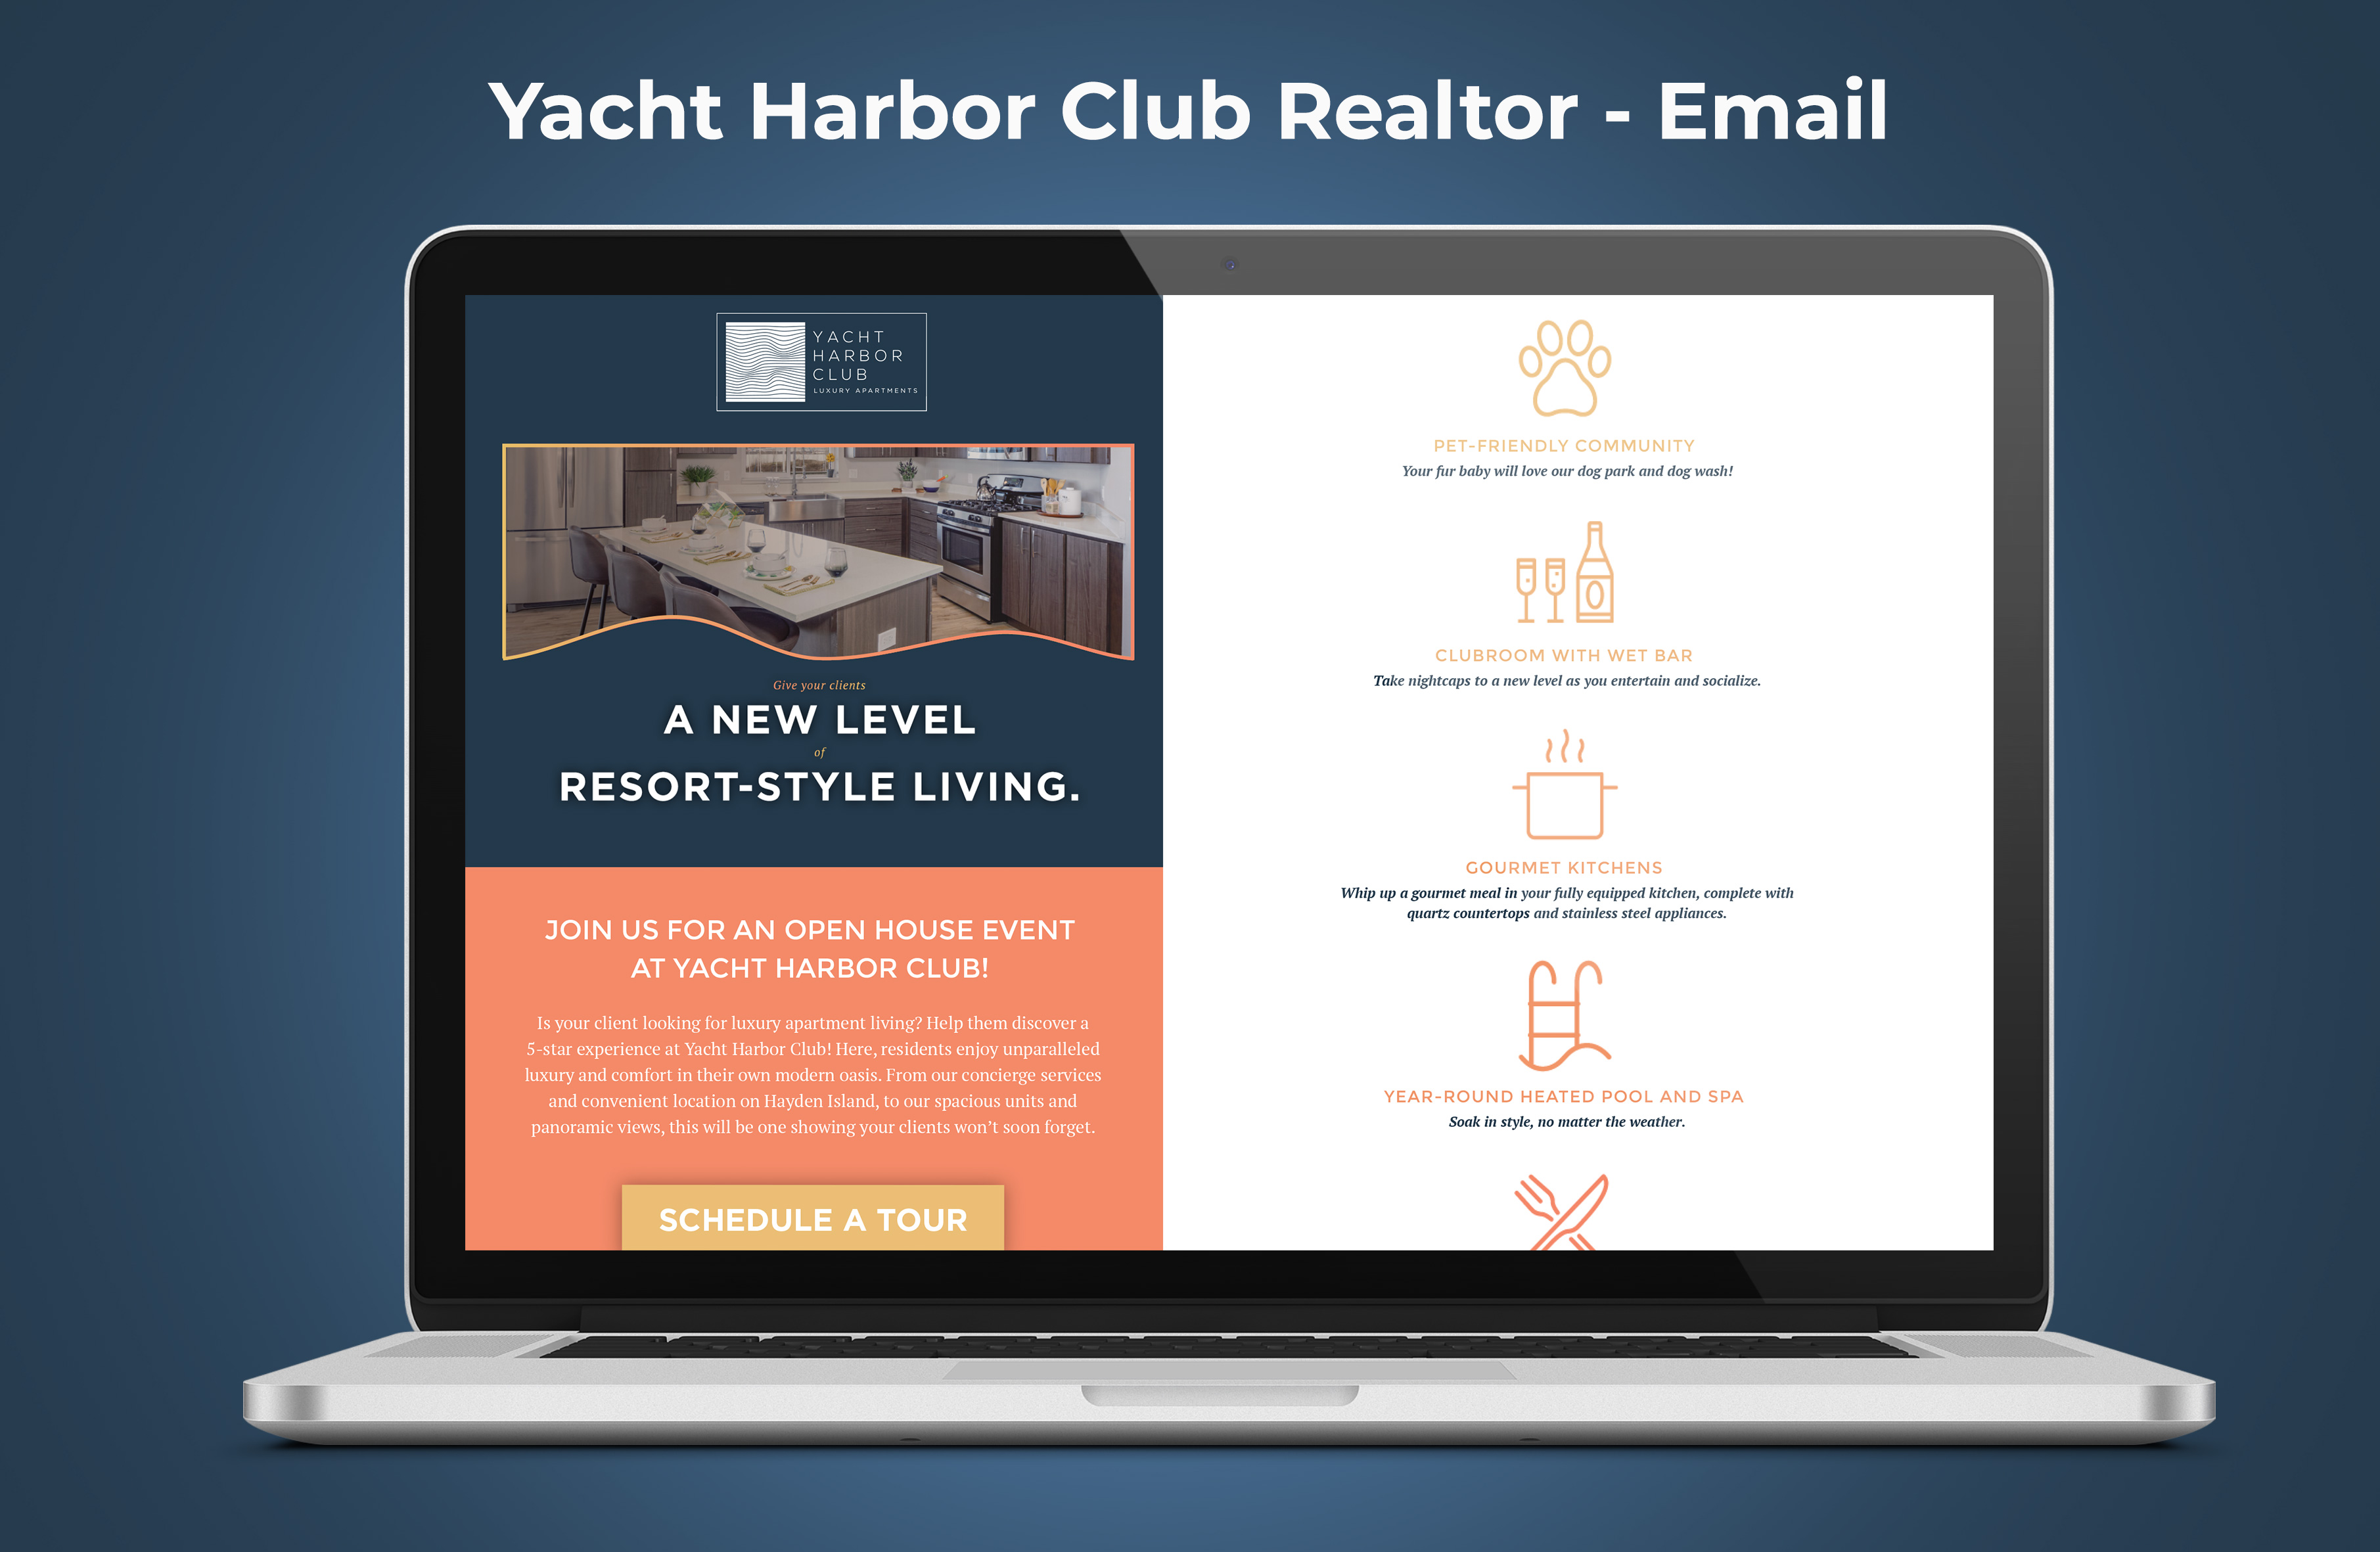 Yacht Harbor Club Realtor Email Graphic